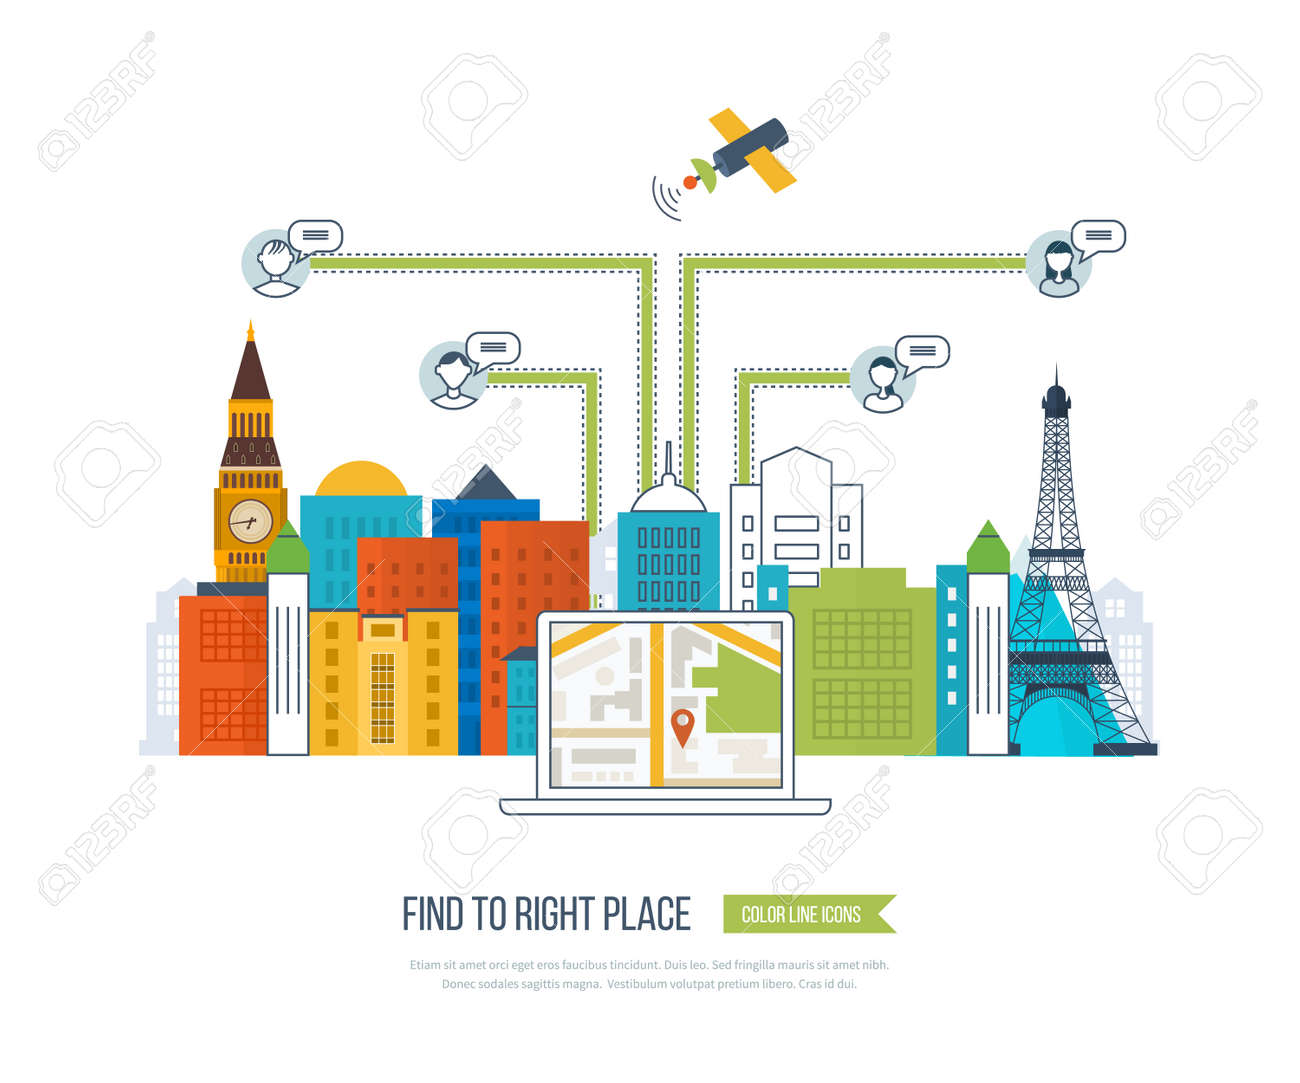 Concepts For Finding The Right Place And People On The Map For Travel And Tourism